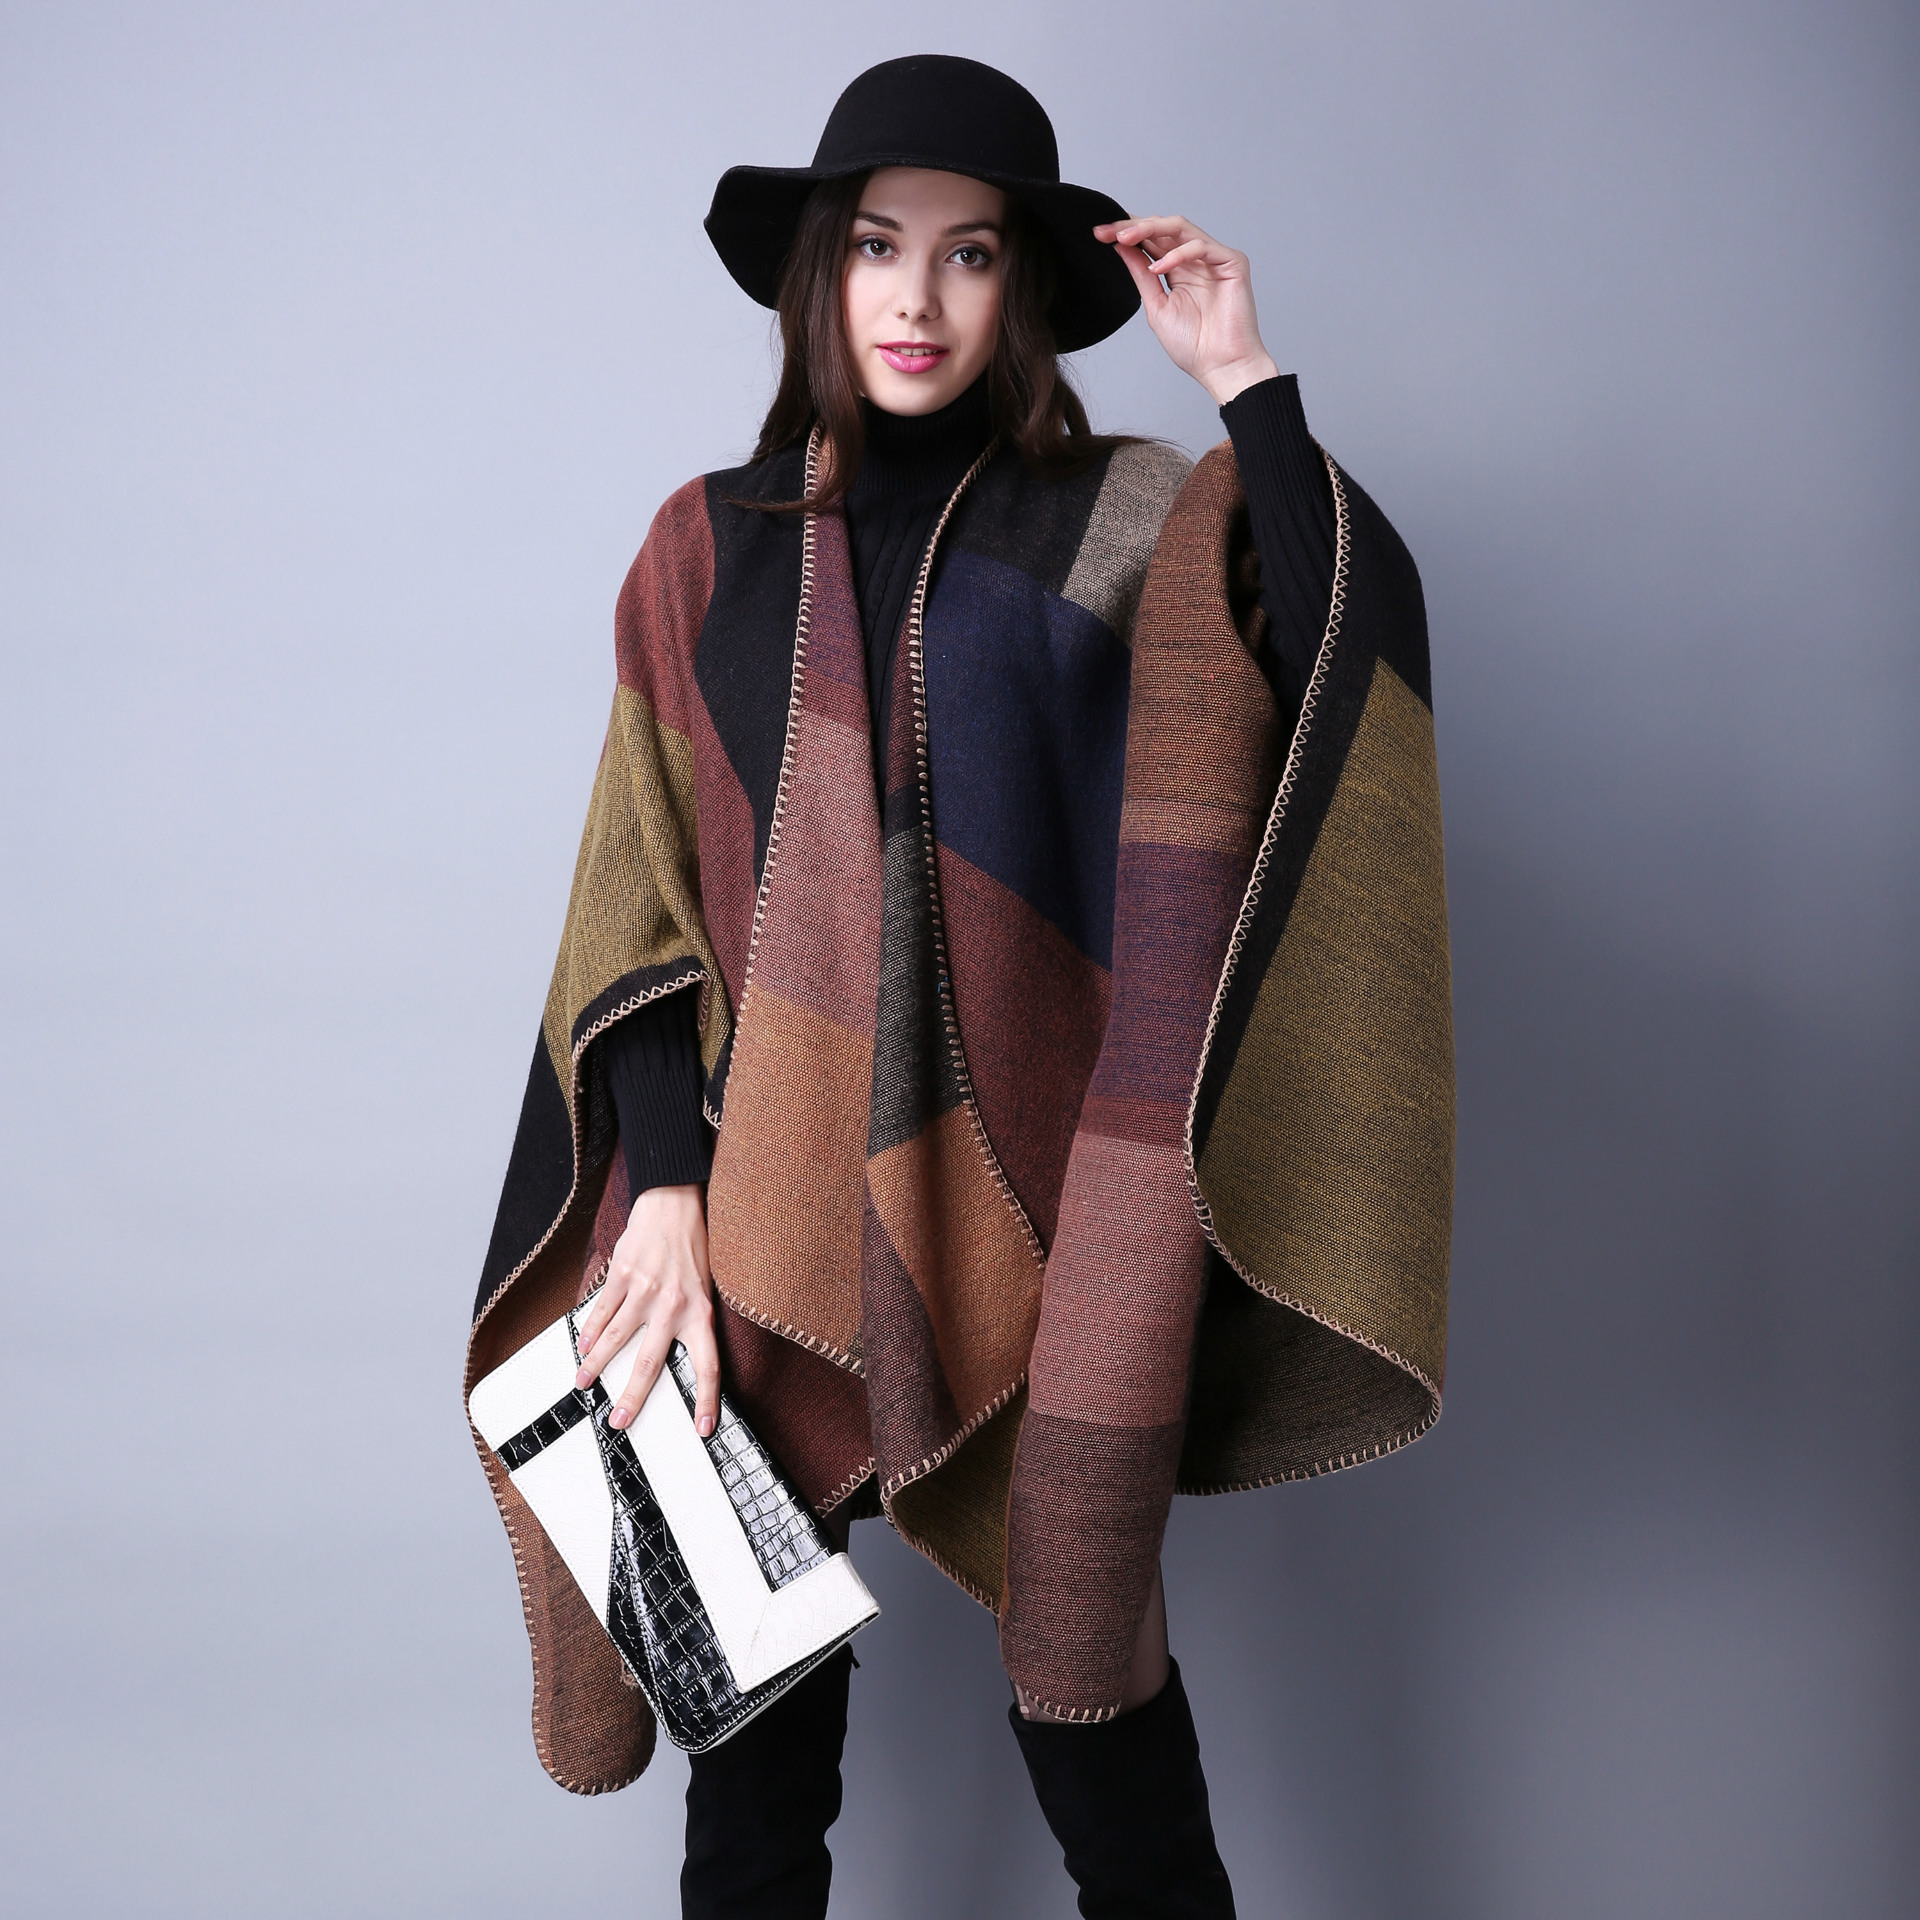 c18a7f896 Women Lady Faux Cashmere Scarf Plaid Poncho Cape Floral Wrap Shawl Blanket  Cloak on Luulla